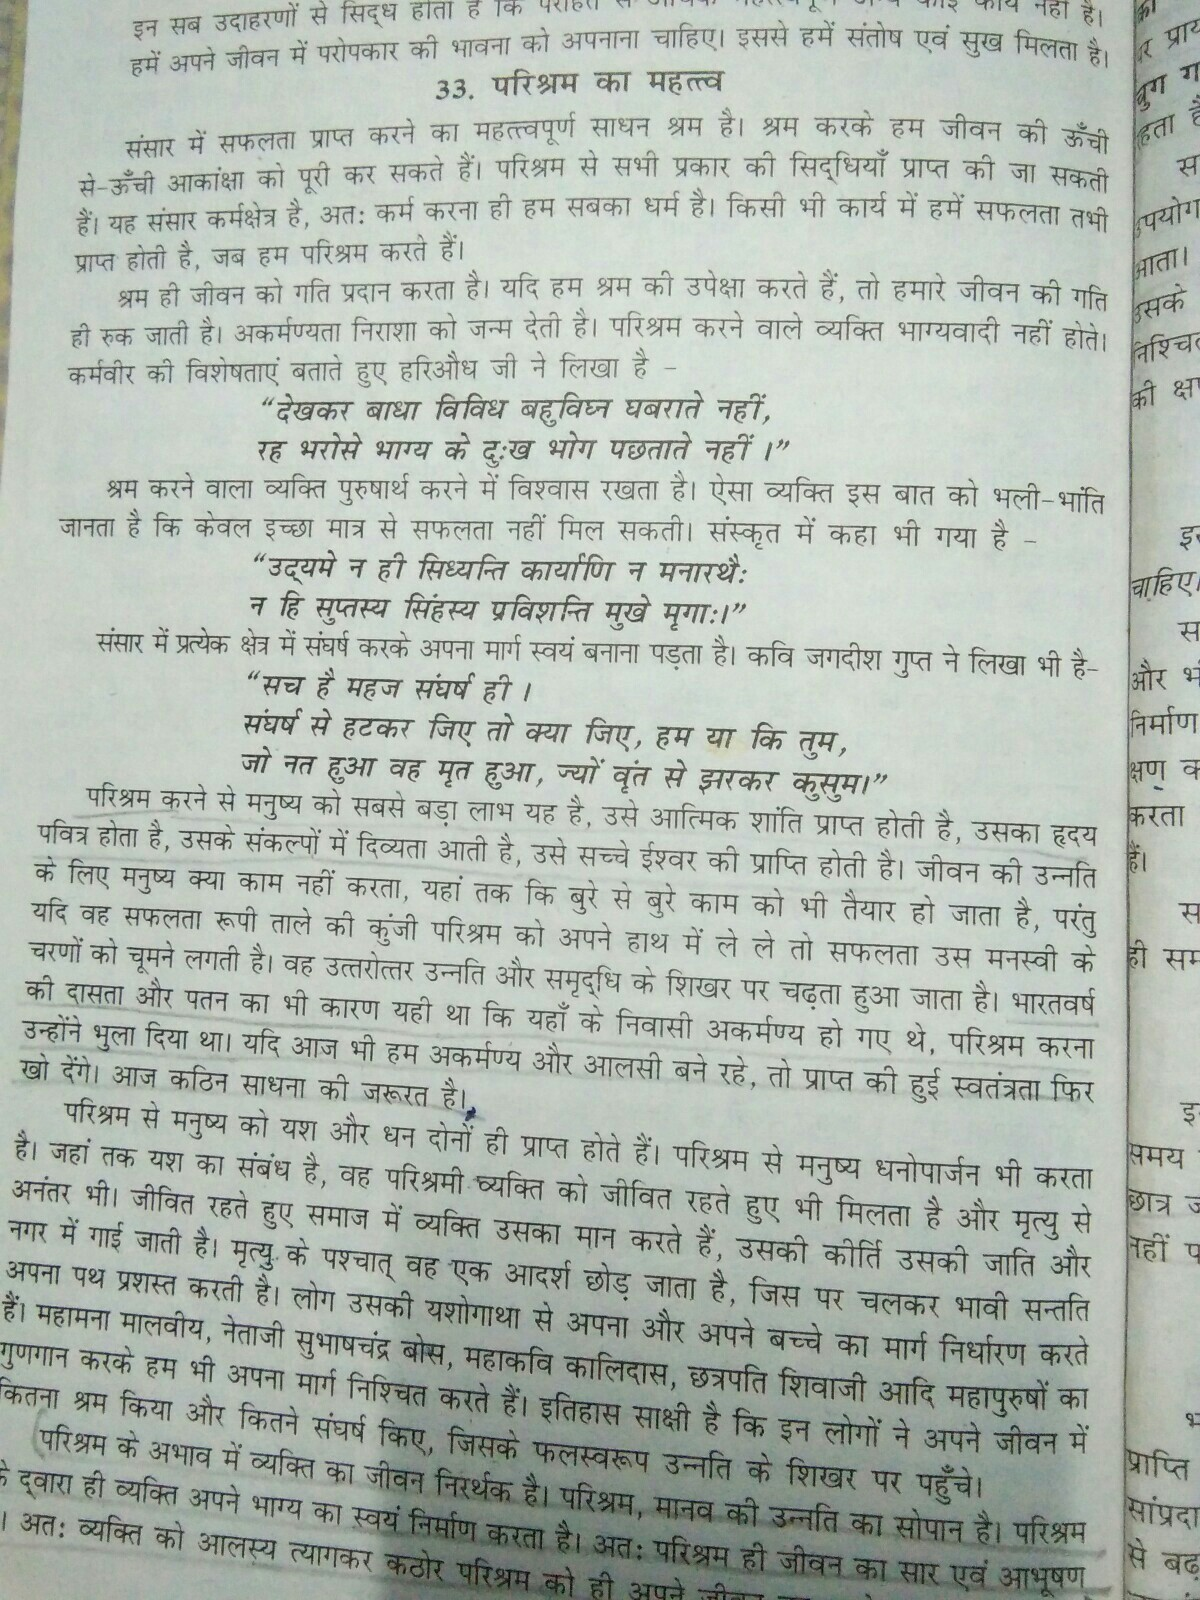 Hindi mein 5 page ka sulekh - Brainly in